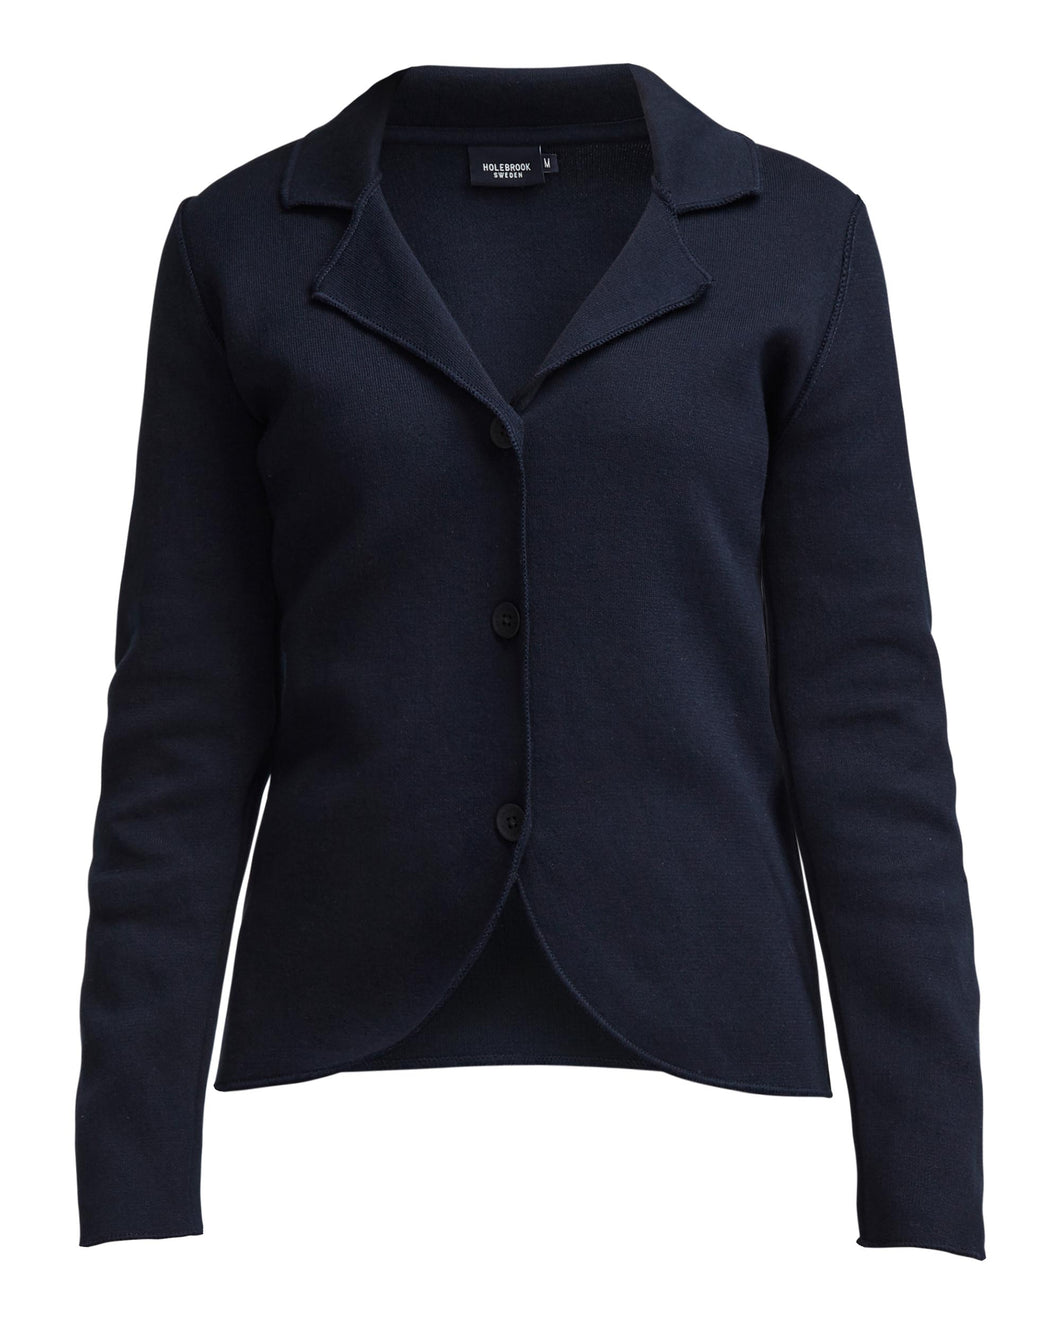 Holebrook Sweden Pernilla Jacket - Navy